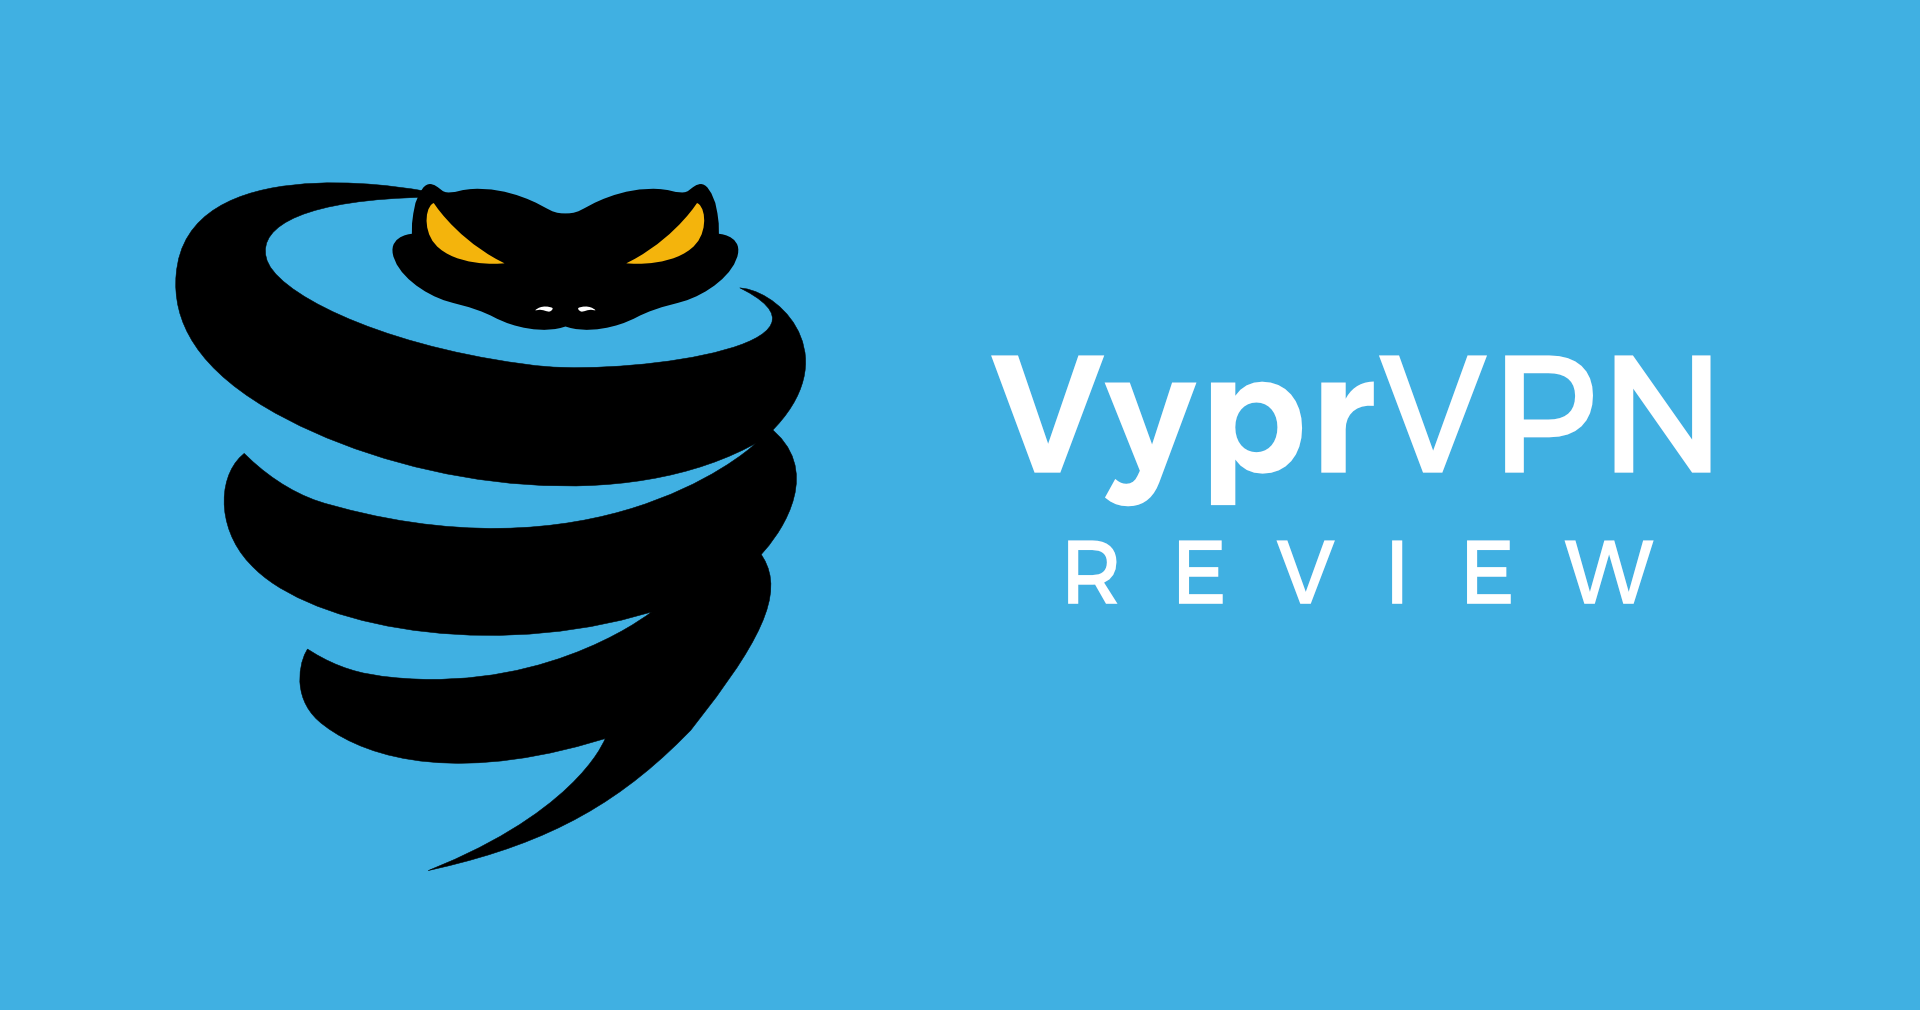 VyprVPN Review: Why You Should Not Underestimate This VPN